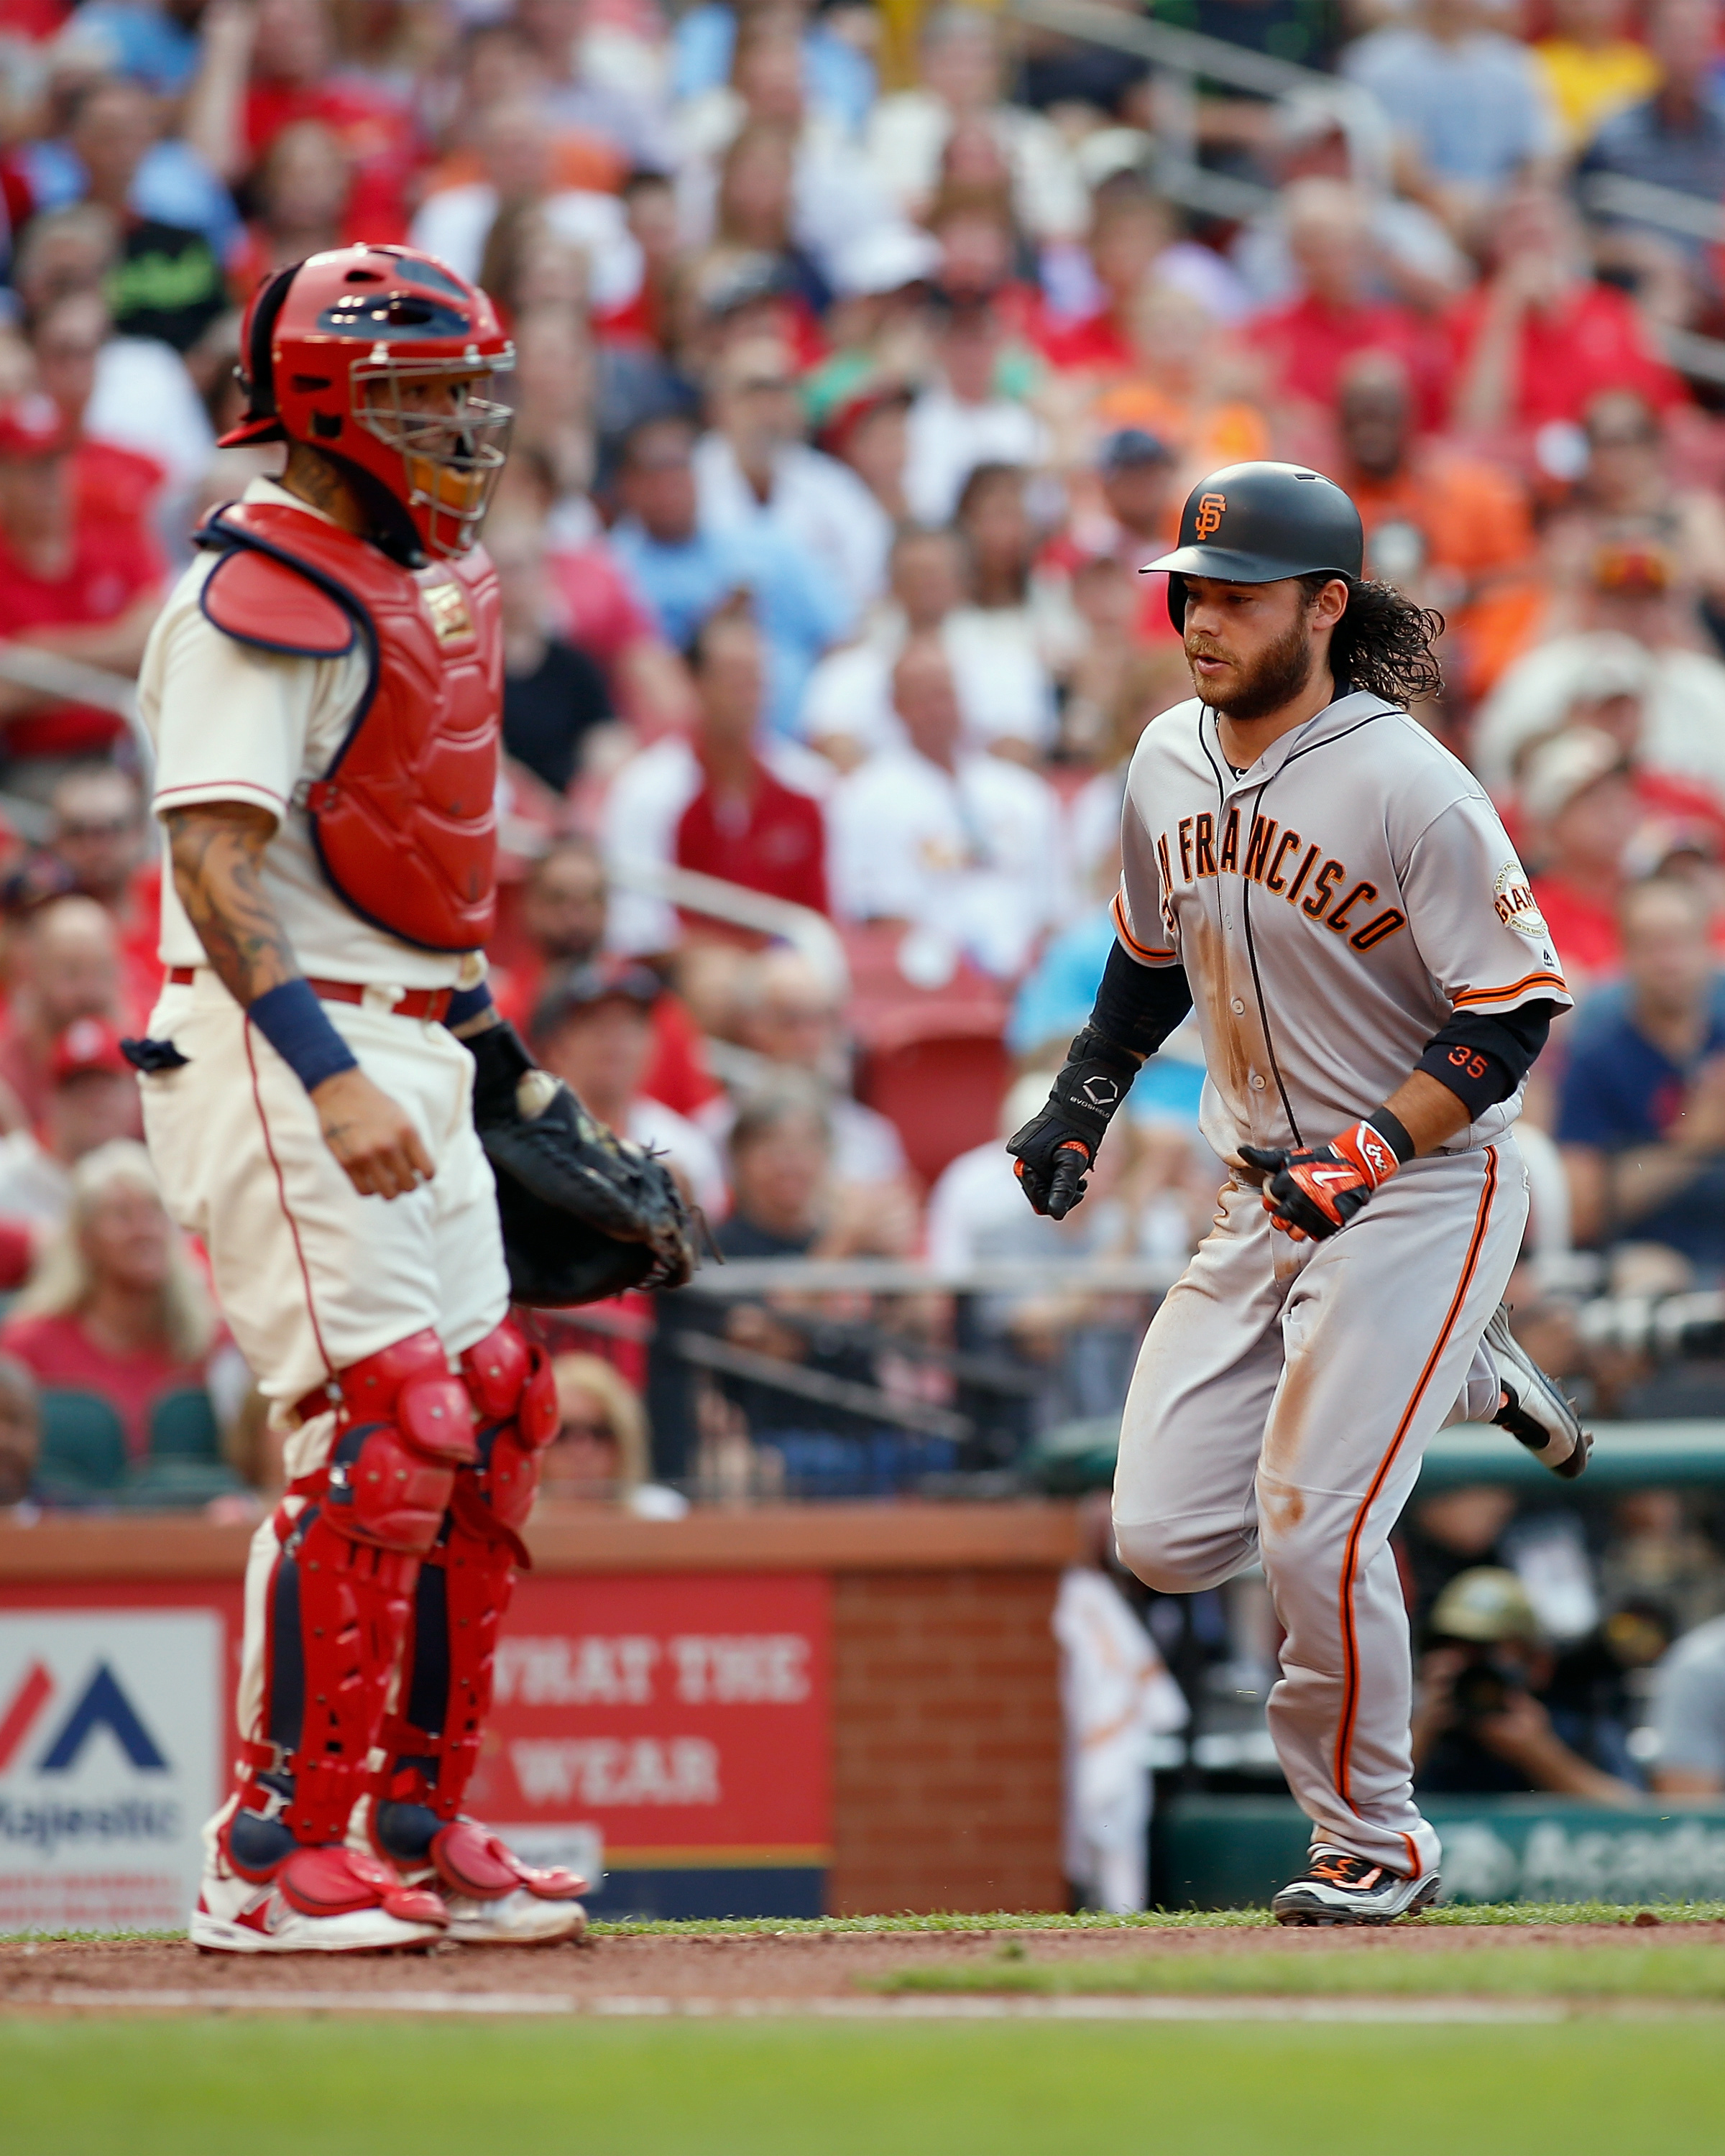 St. Louis Cardinals catcher Yadier Molina, left, looks on as San Francisco Giants' Brandon Crawford scores a run during the second inning of a baseball game Saturday, June 4, 2016, in St. Louis. (AP Photo/Scott Kane)